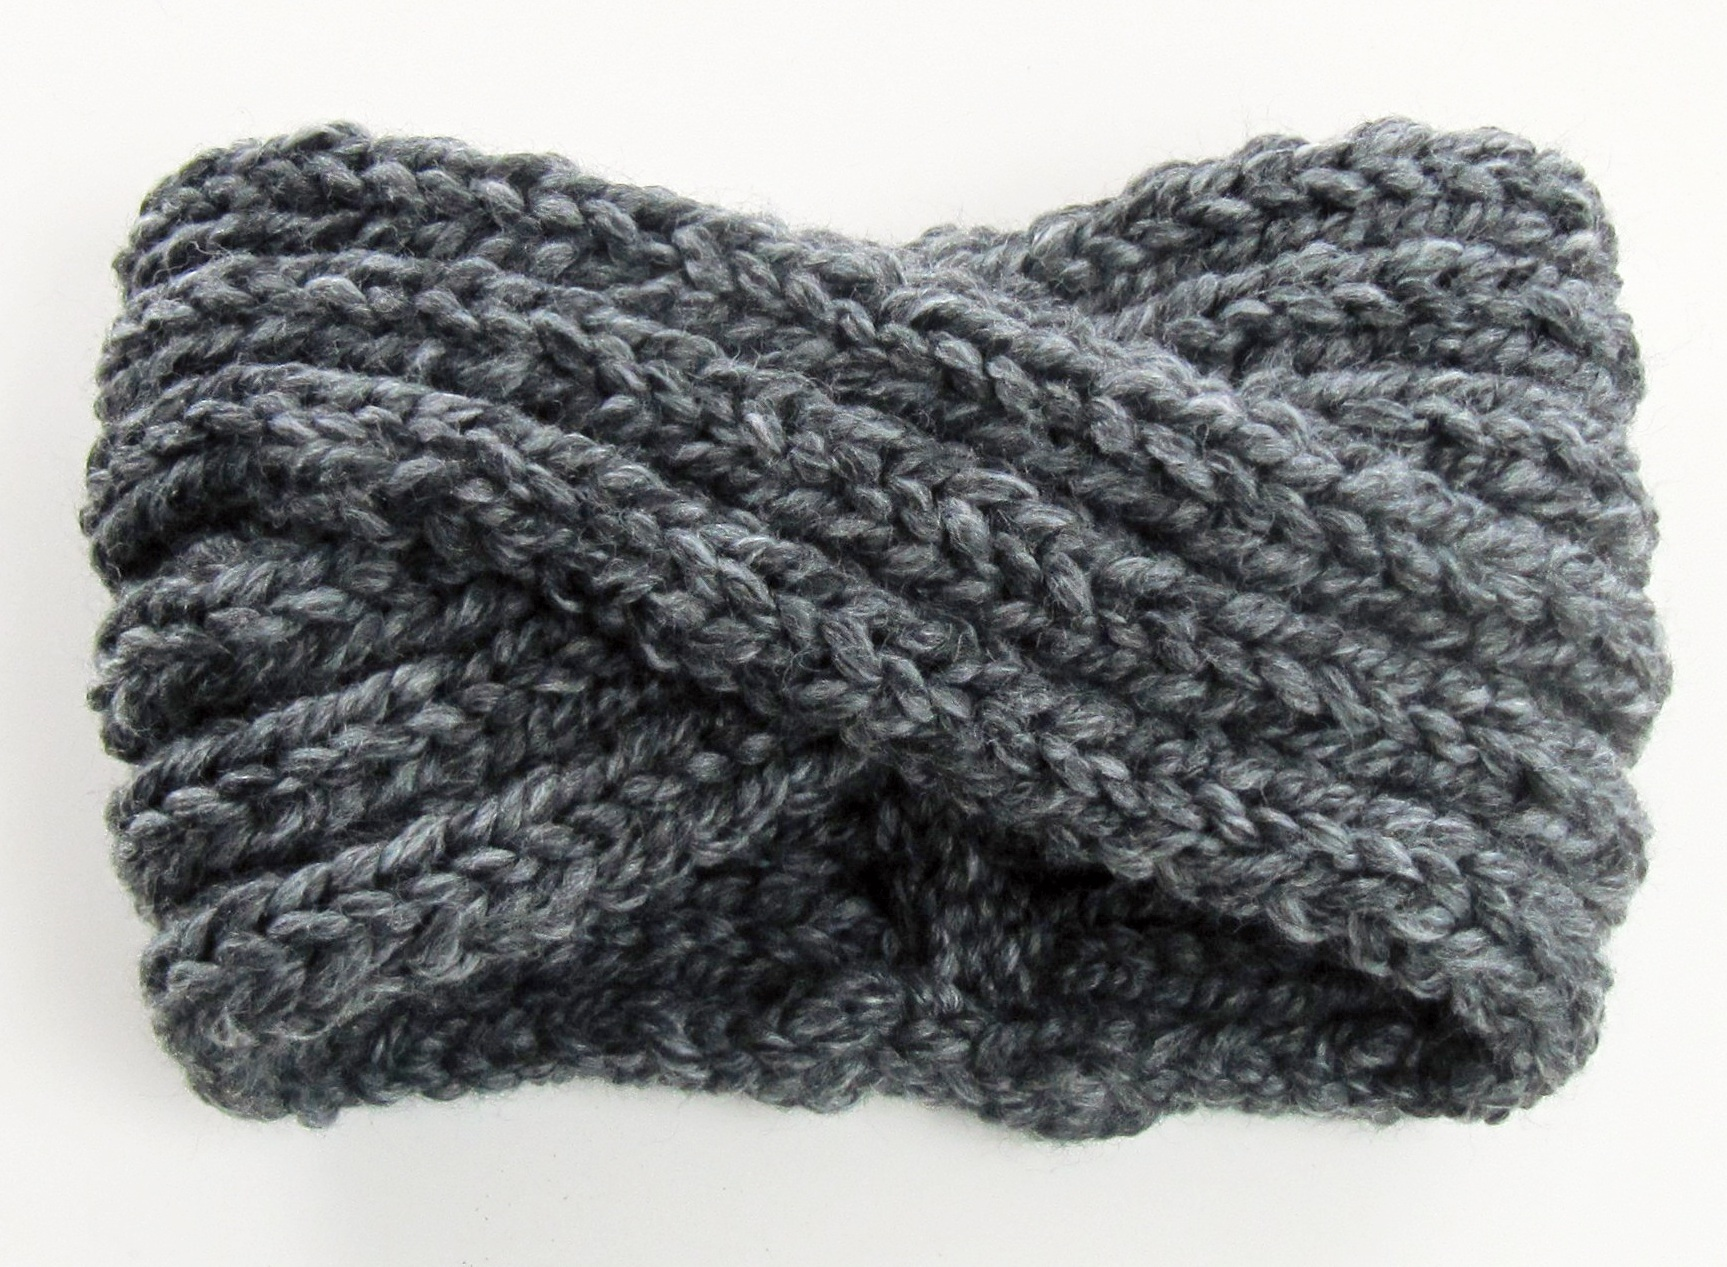 Free Crochet Pattern For Turban Headband : chunky knit turban headband ear warmer KNITS FOR LIFE